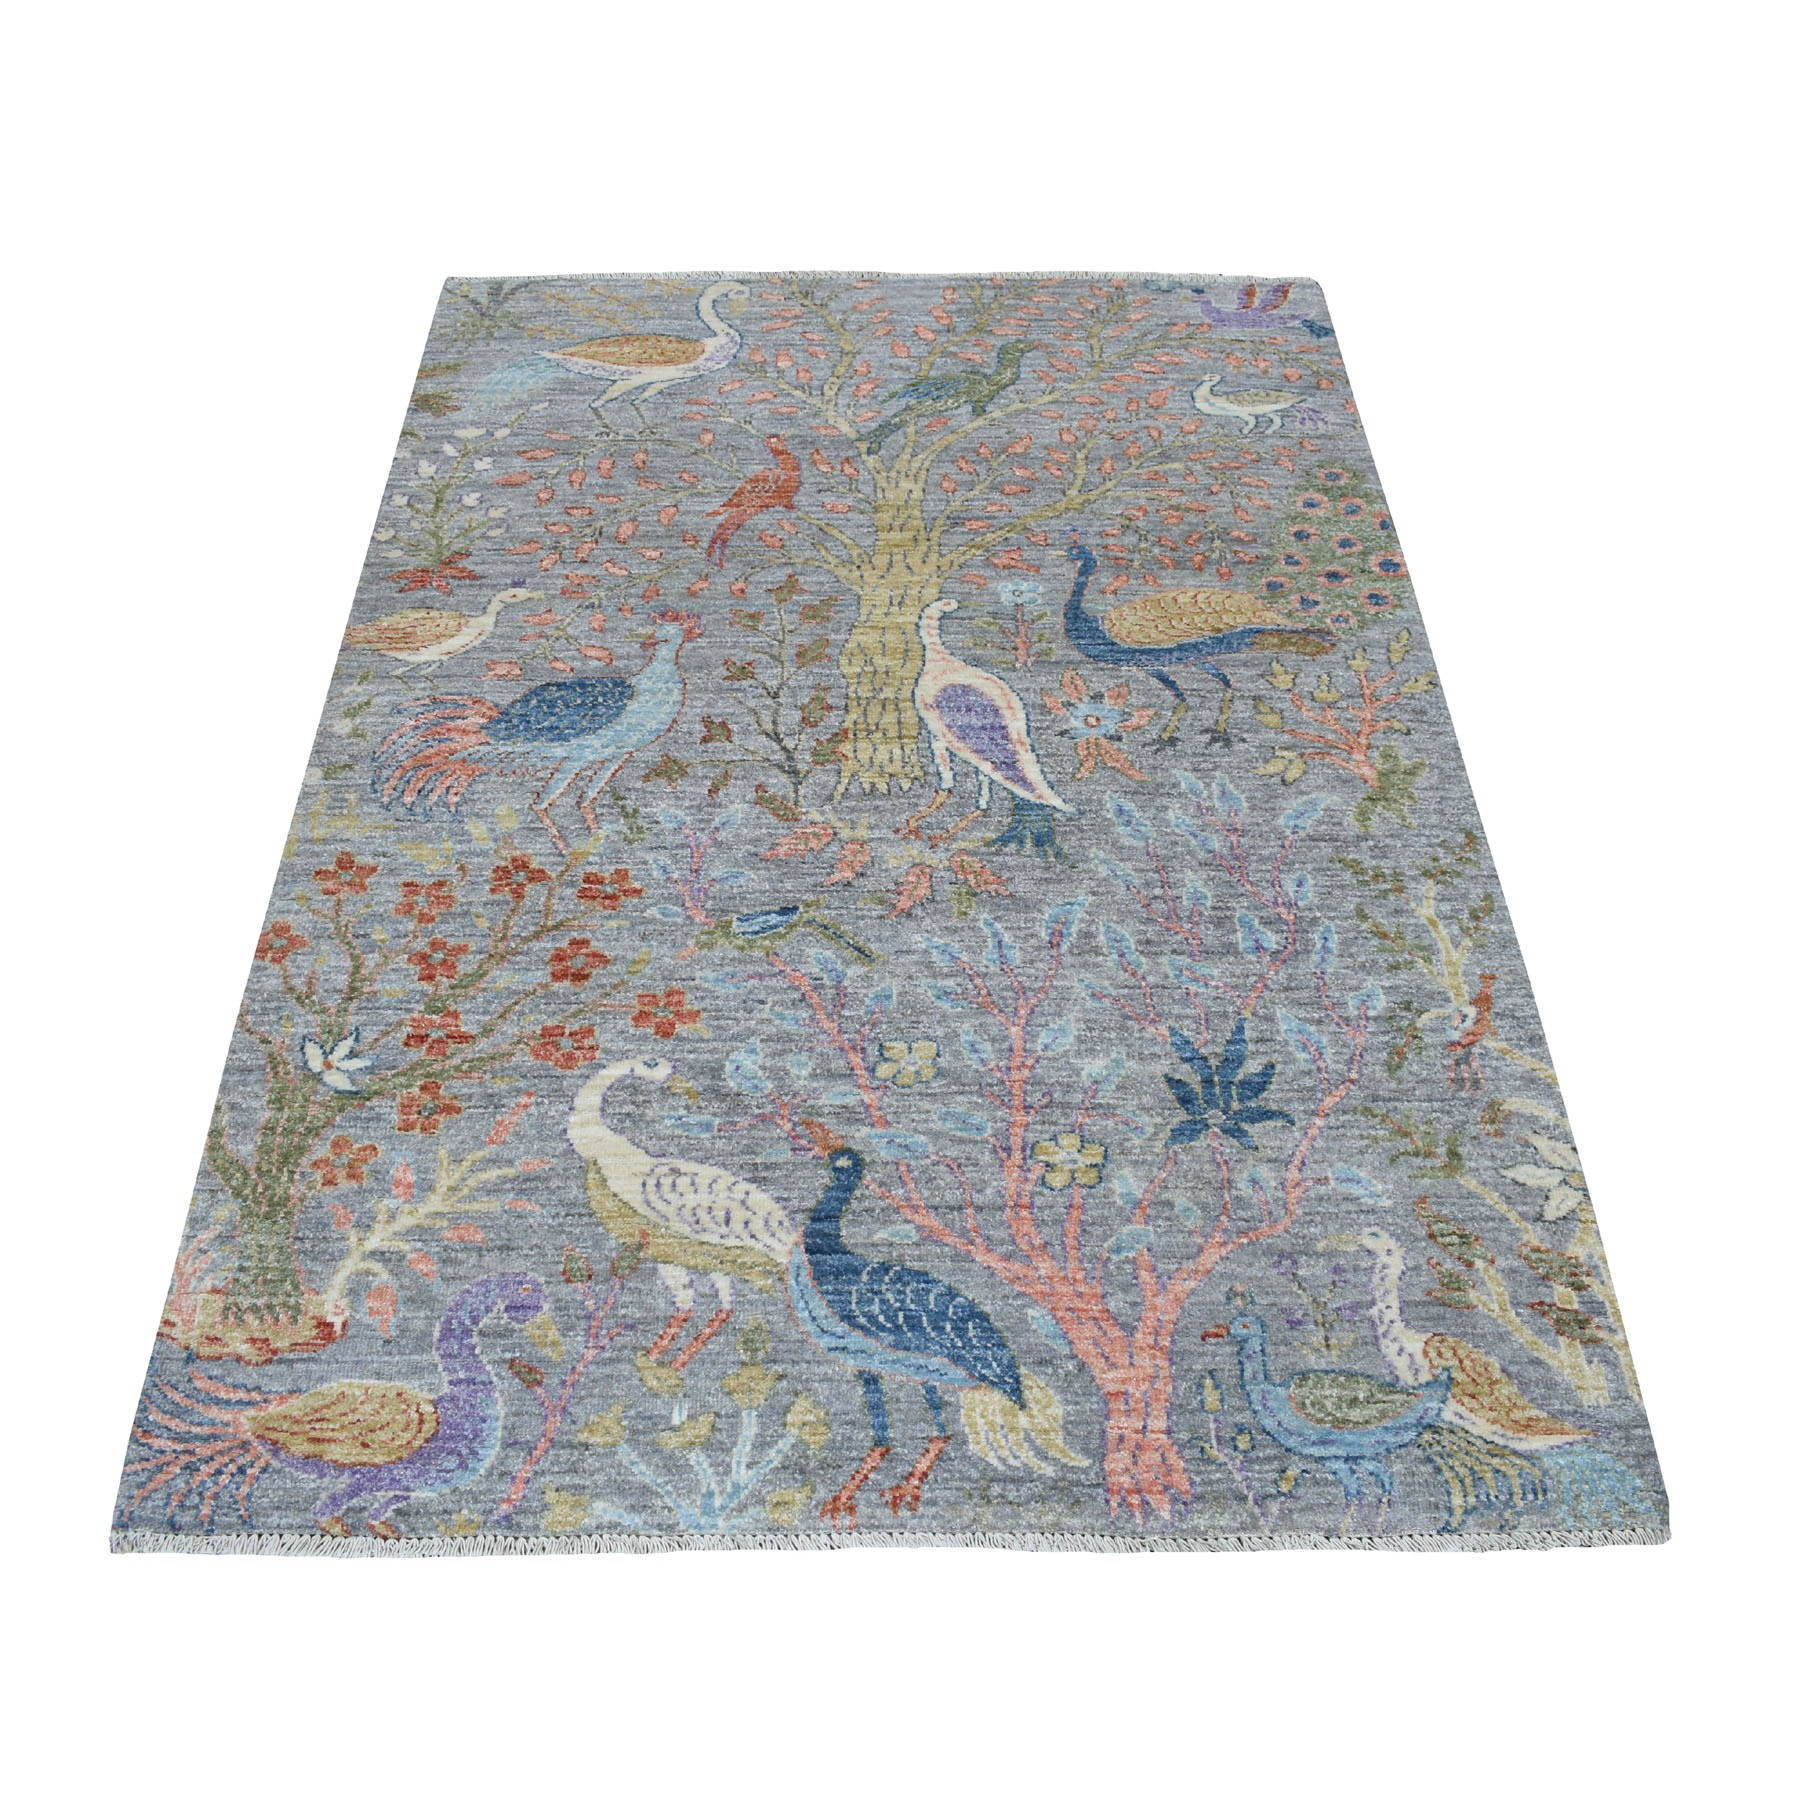 4'x6' Gray Birds of Paradise Peshawar Pure Wool Hand Woven Oriental Rug